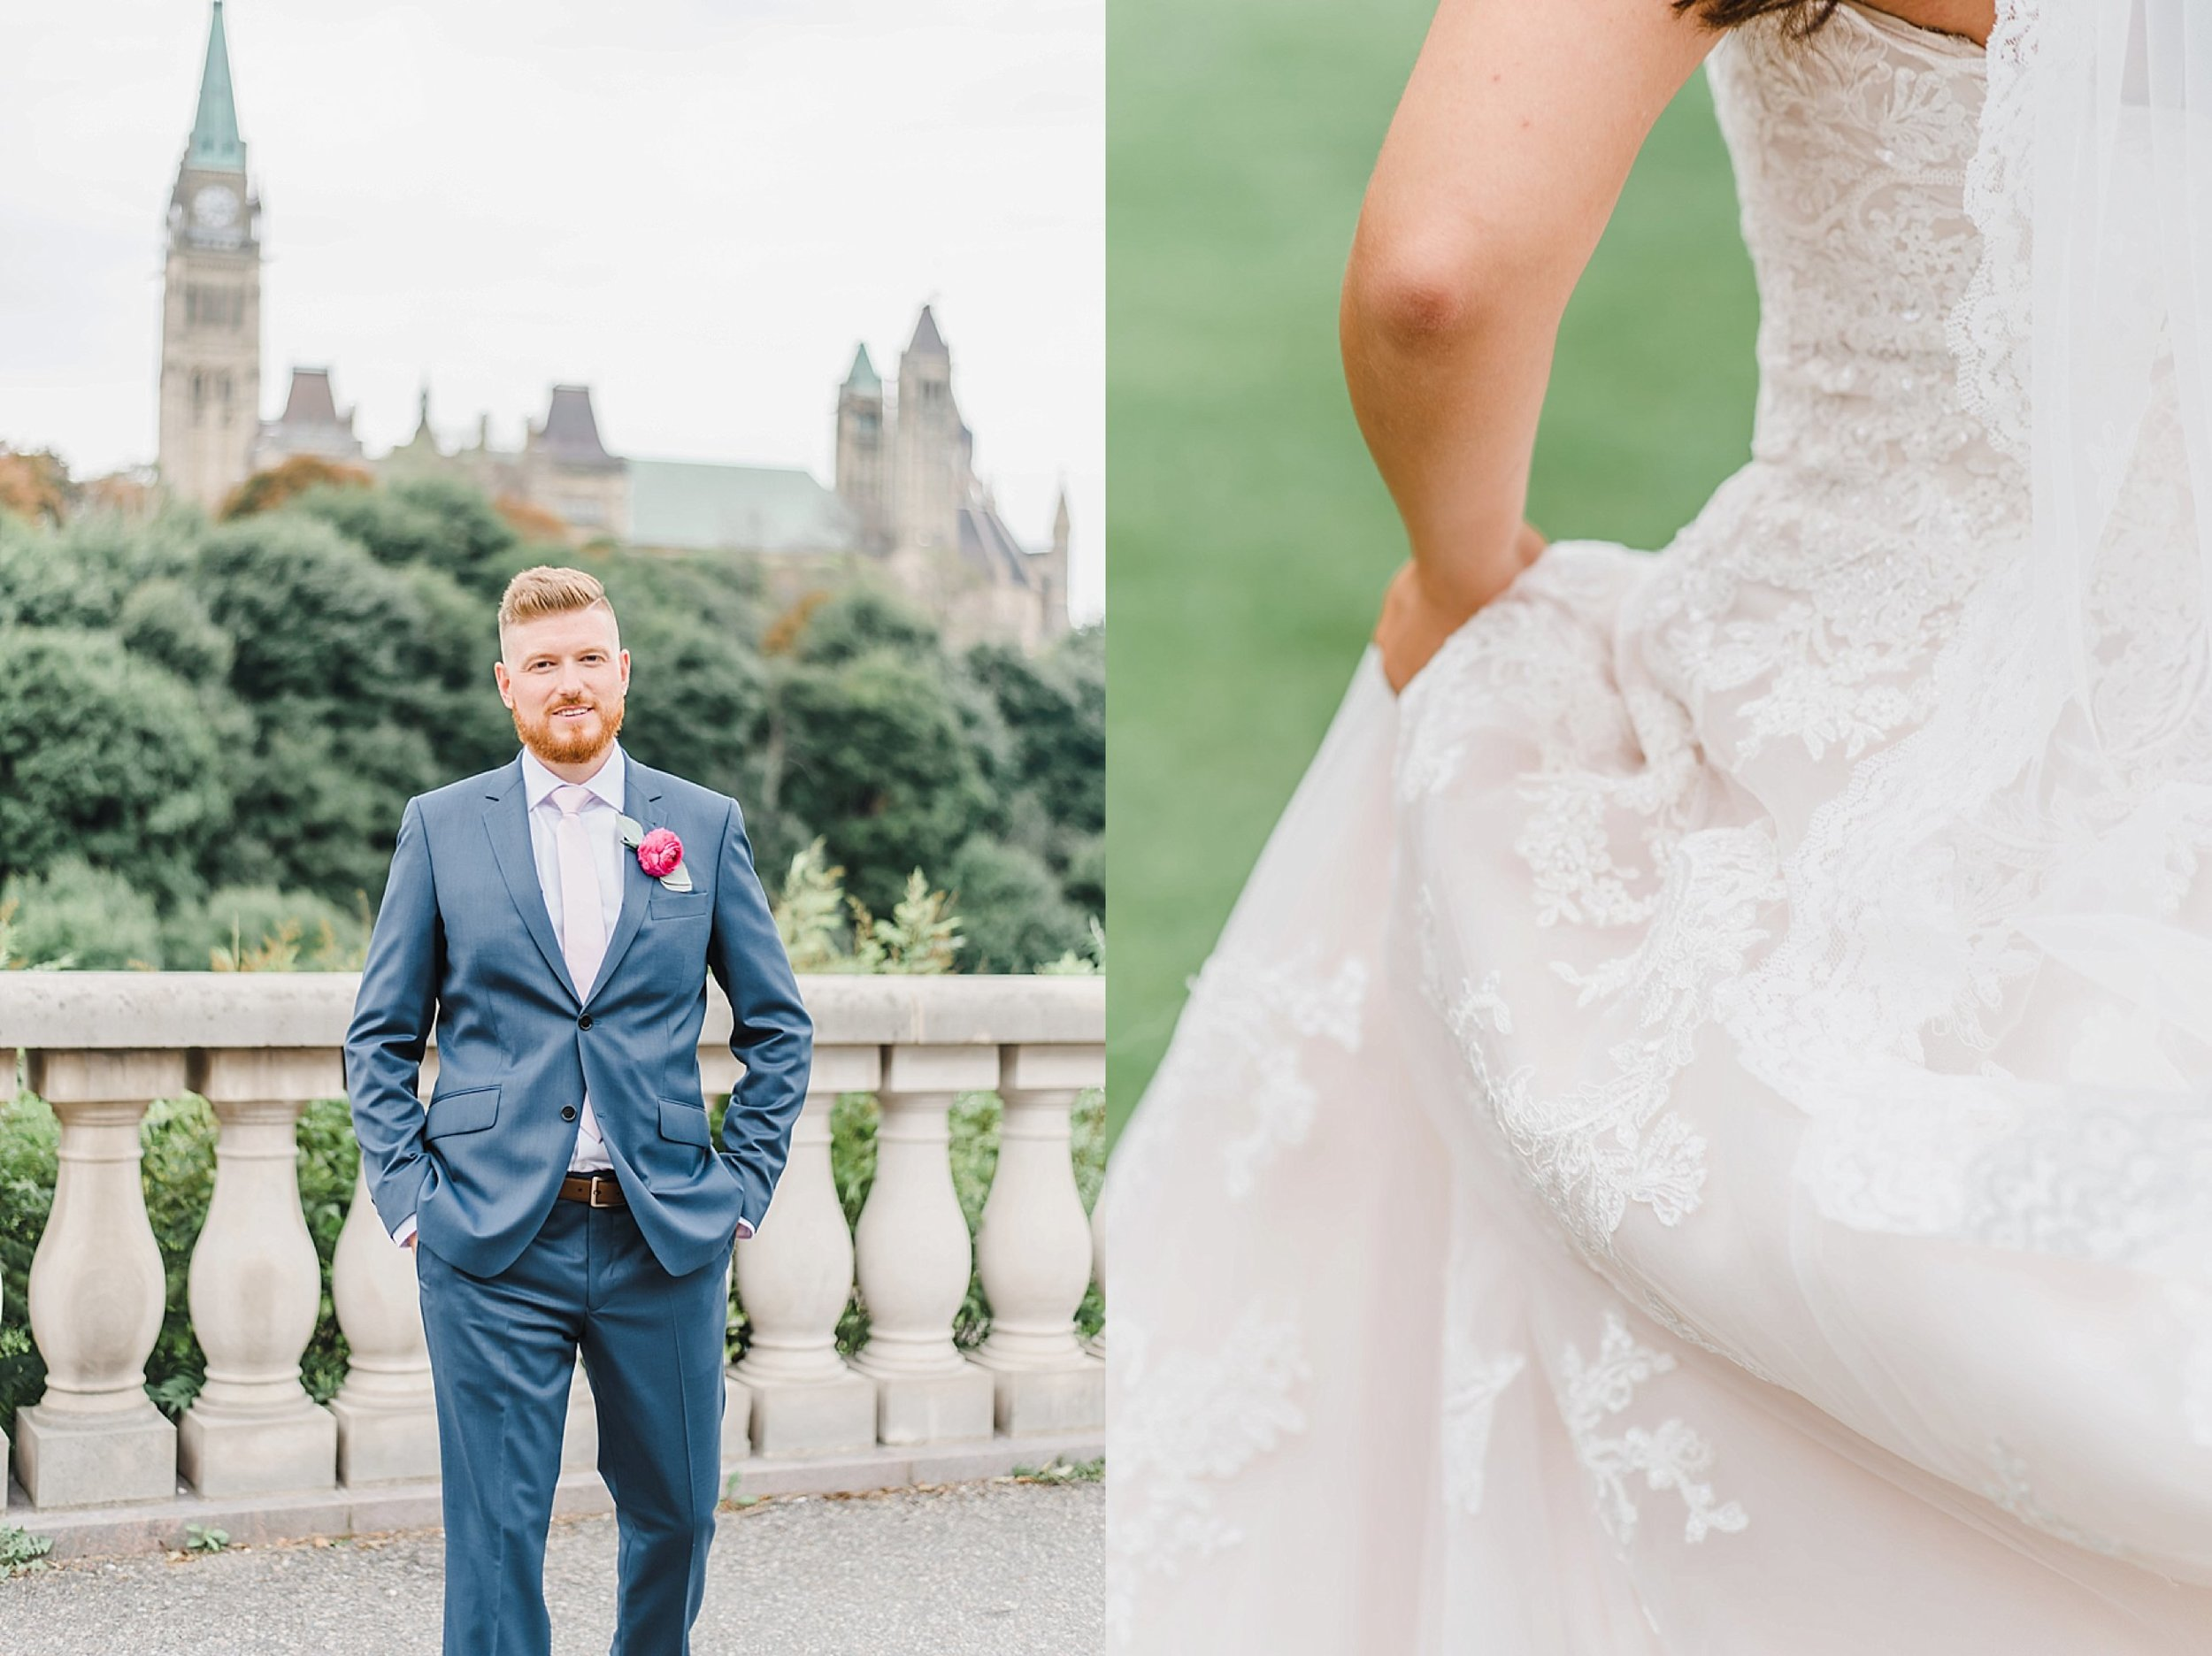 light airy indie fine art ottawa wedding photographer | Ali and Batoul Photography_1636.jpg